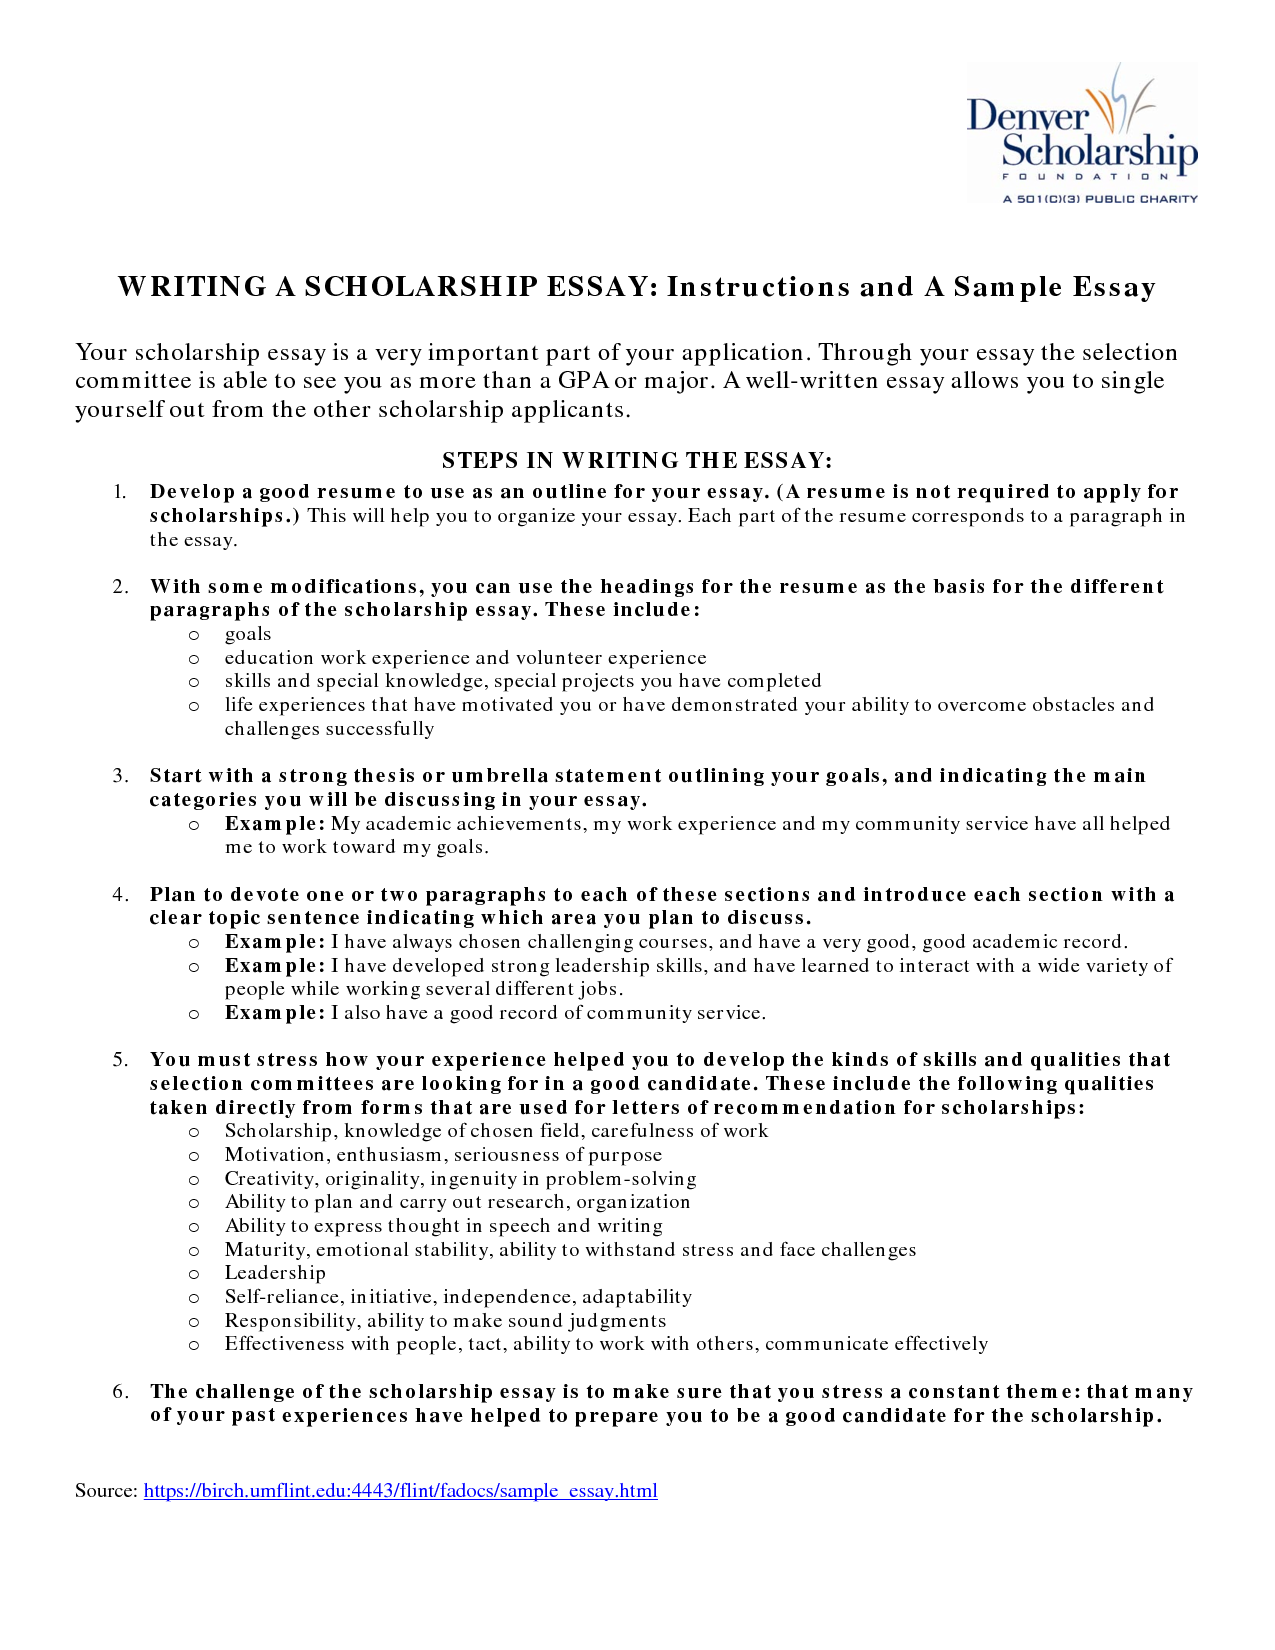 023 Essay Example What To Write For Scholarship About Yourself On Tips Writing Effective Essays Awesome A How That Stands Out Your Career Goals Financial Need Full